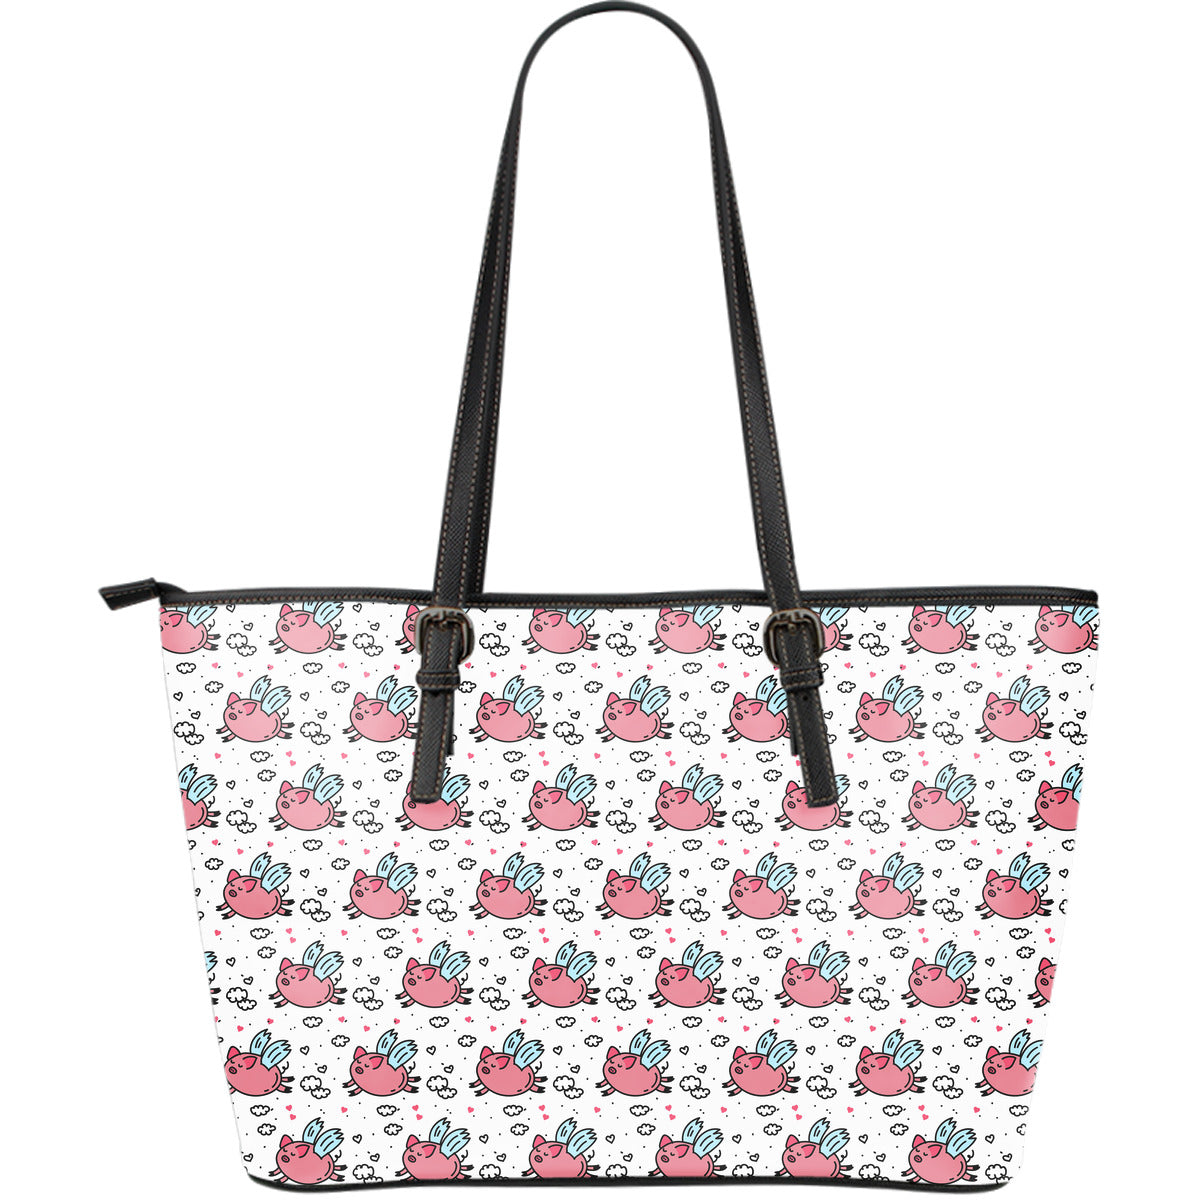 Flying Piggies Large Leather Tote Bag